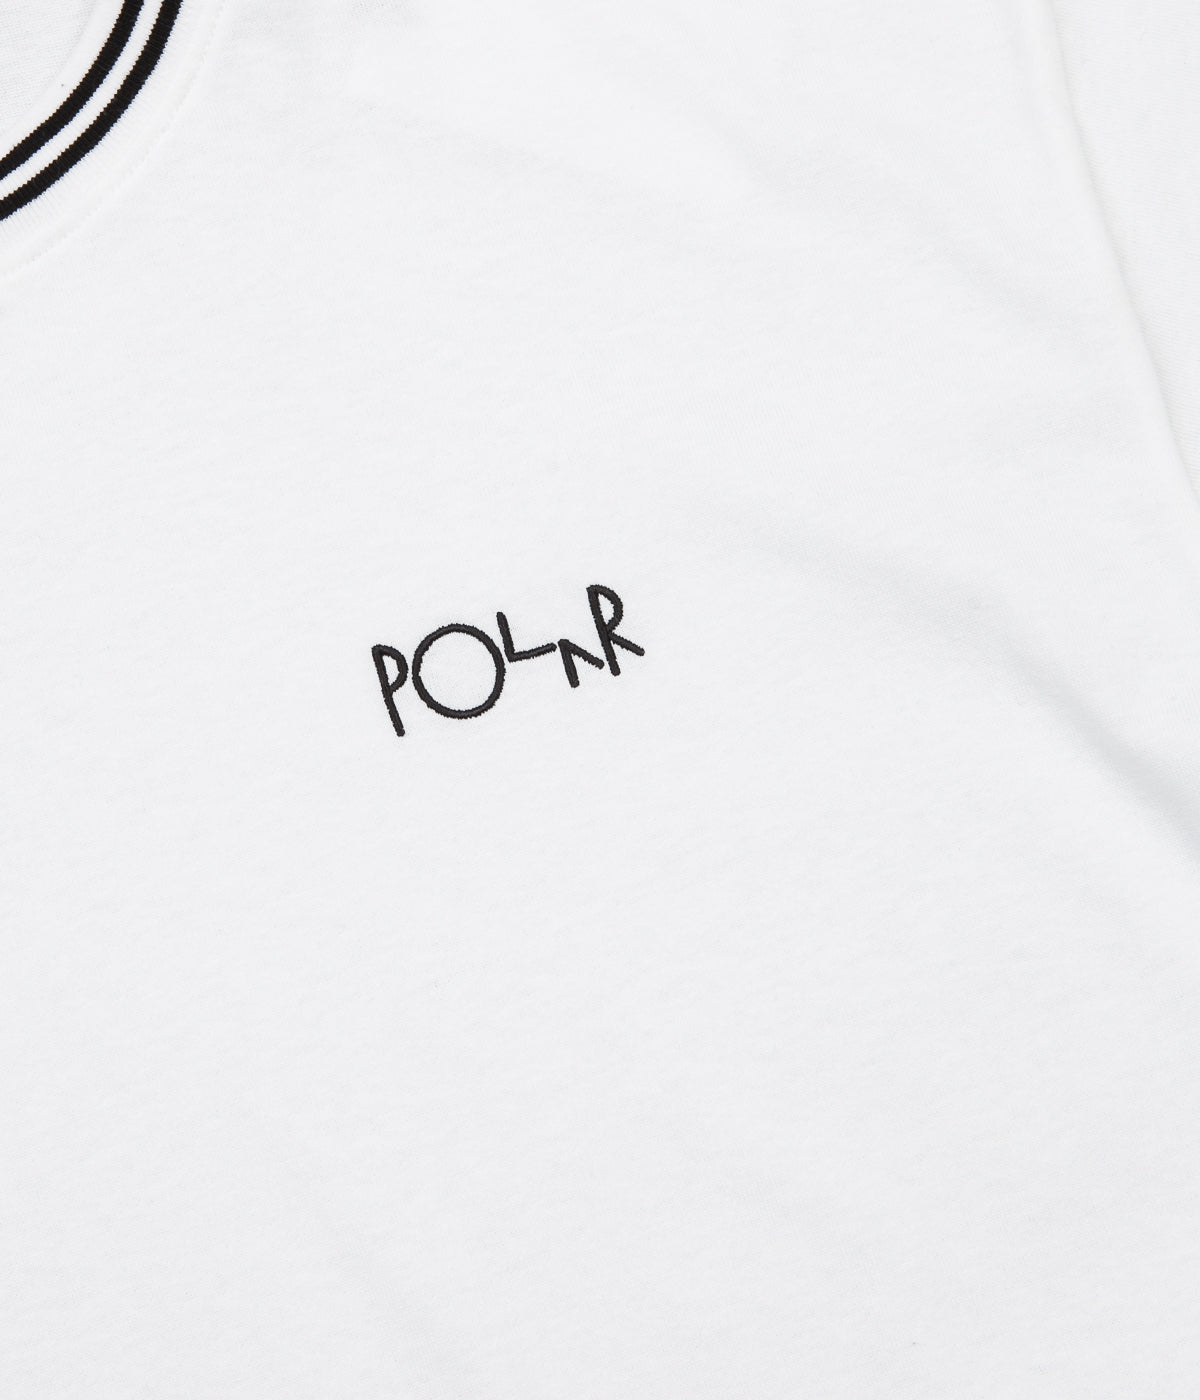 Polar Striped Rib Long Sleeve T-Shirt - White / Black